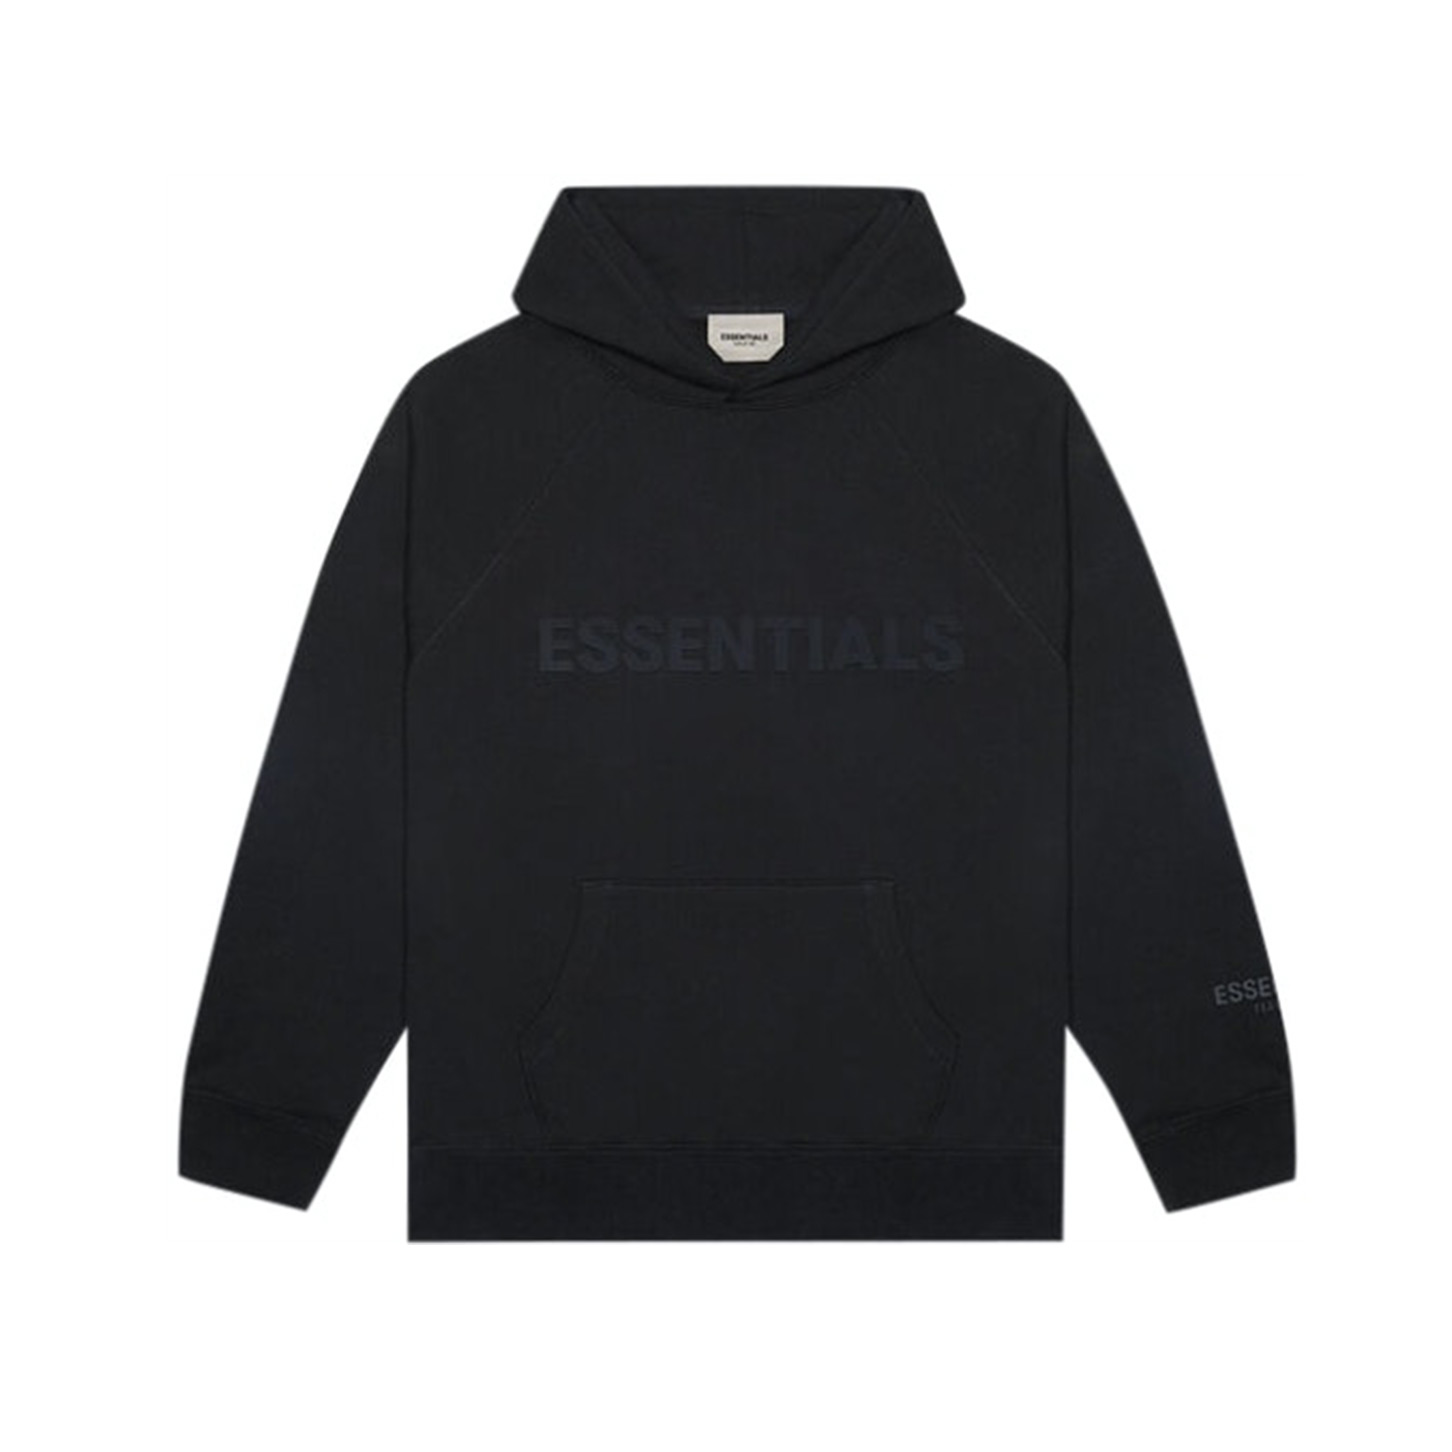 FEAR OF GOD ESSENTIALS Pullover Hoodie Dark Slate/Stretch Limo/Black 20SS